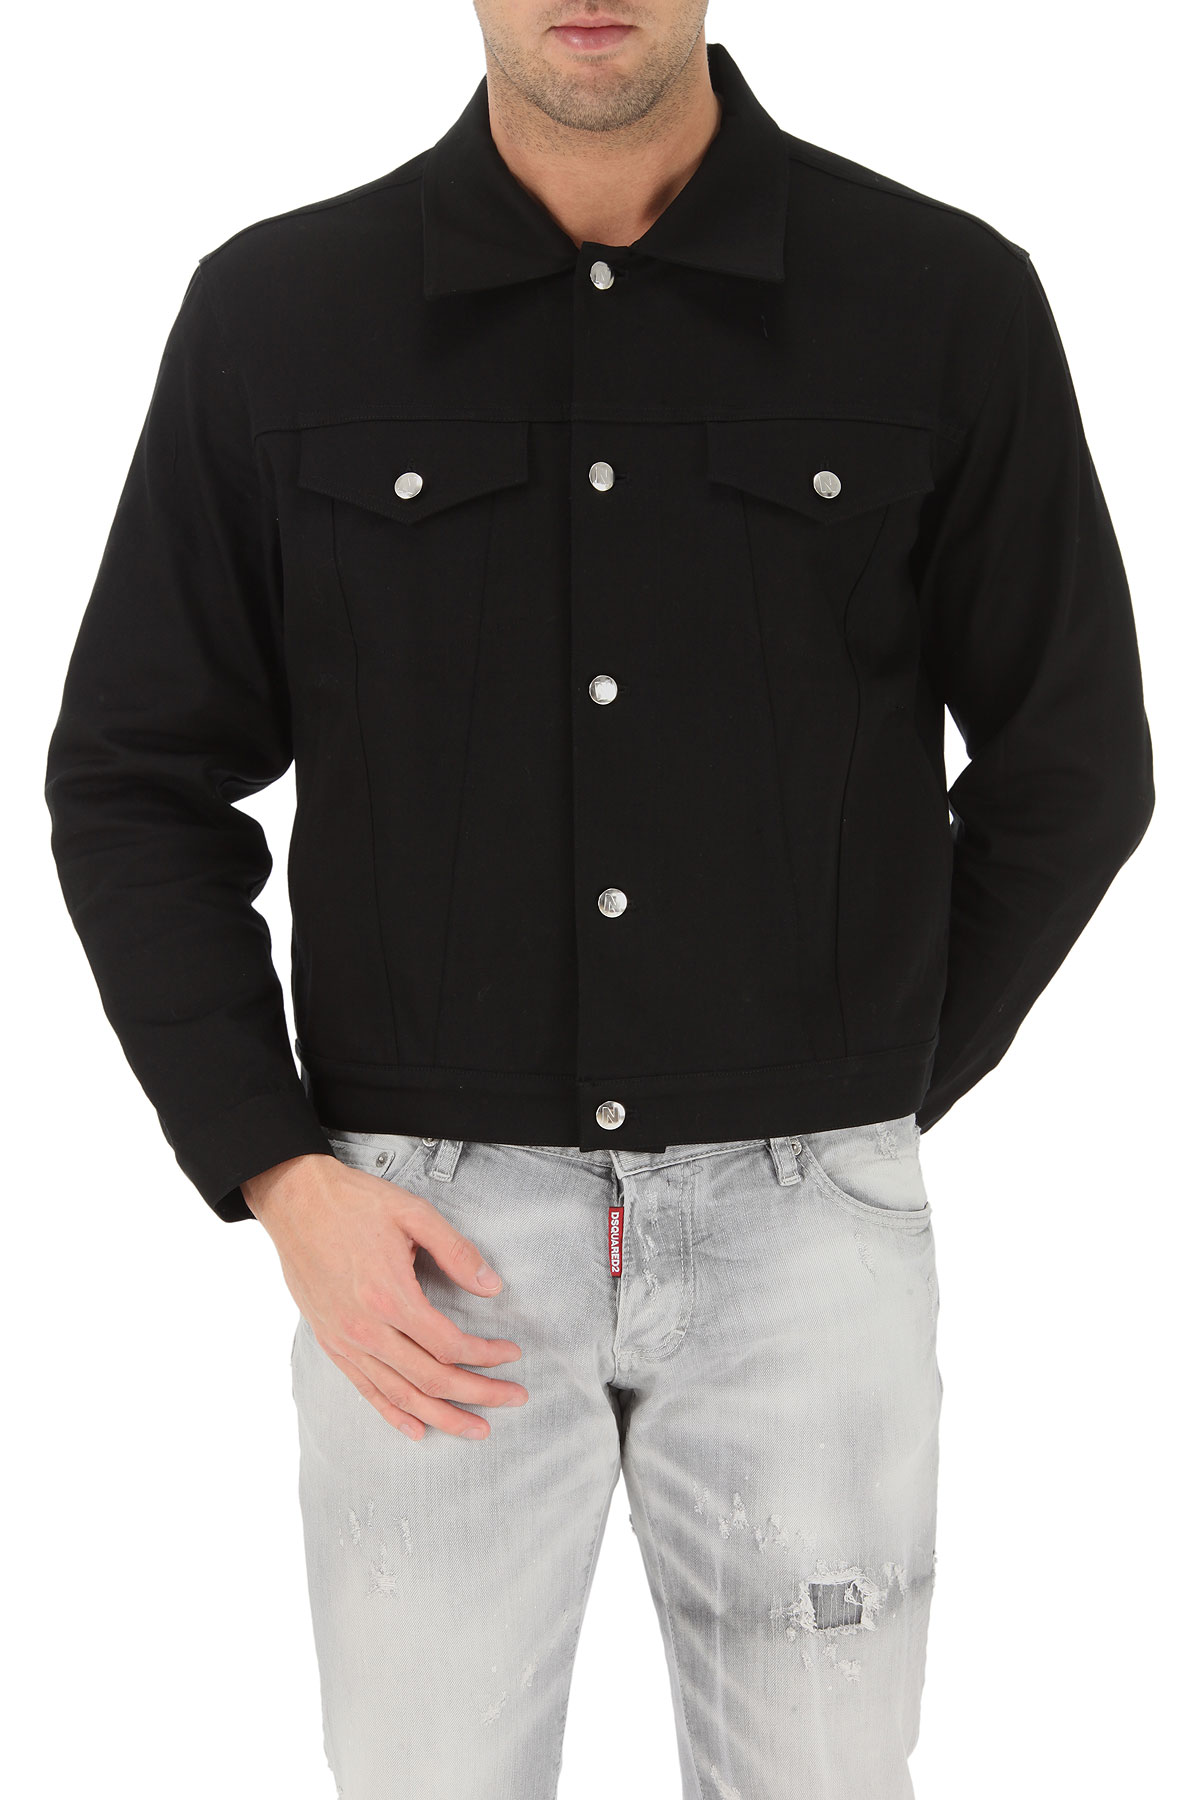 Image of Nicopanda Jacket for Men On Sale, Black, Cotton, 2017, 1 - Uk/Usa S - Ita 46 3 - Uk/Usa L - Ita 50 2 - Uk/Usa M - Ita 48